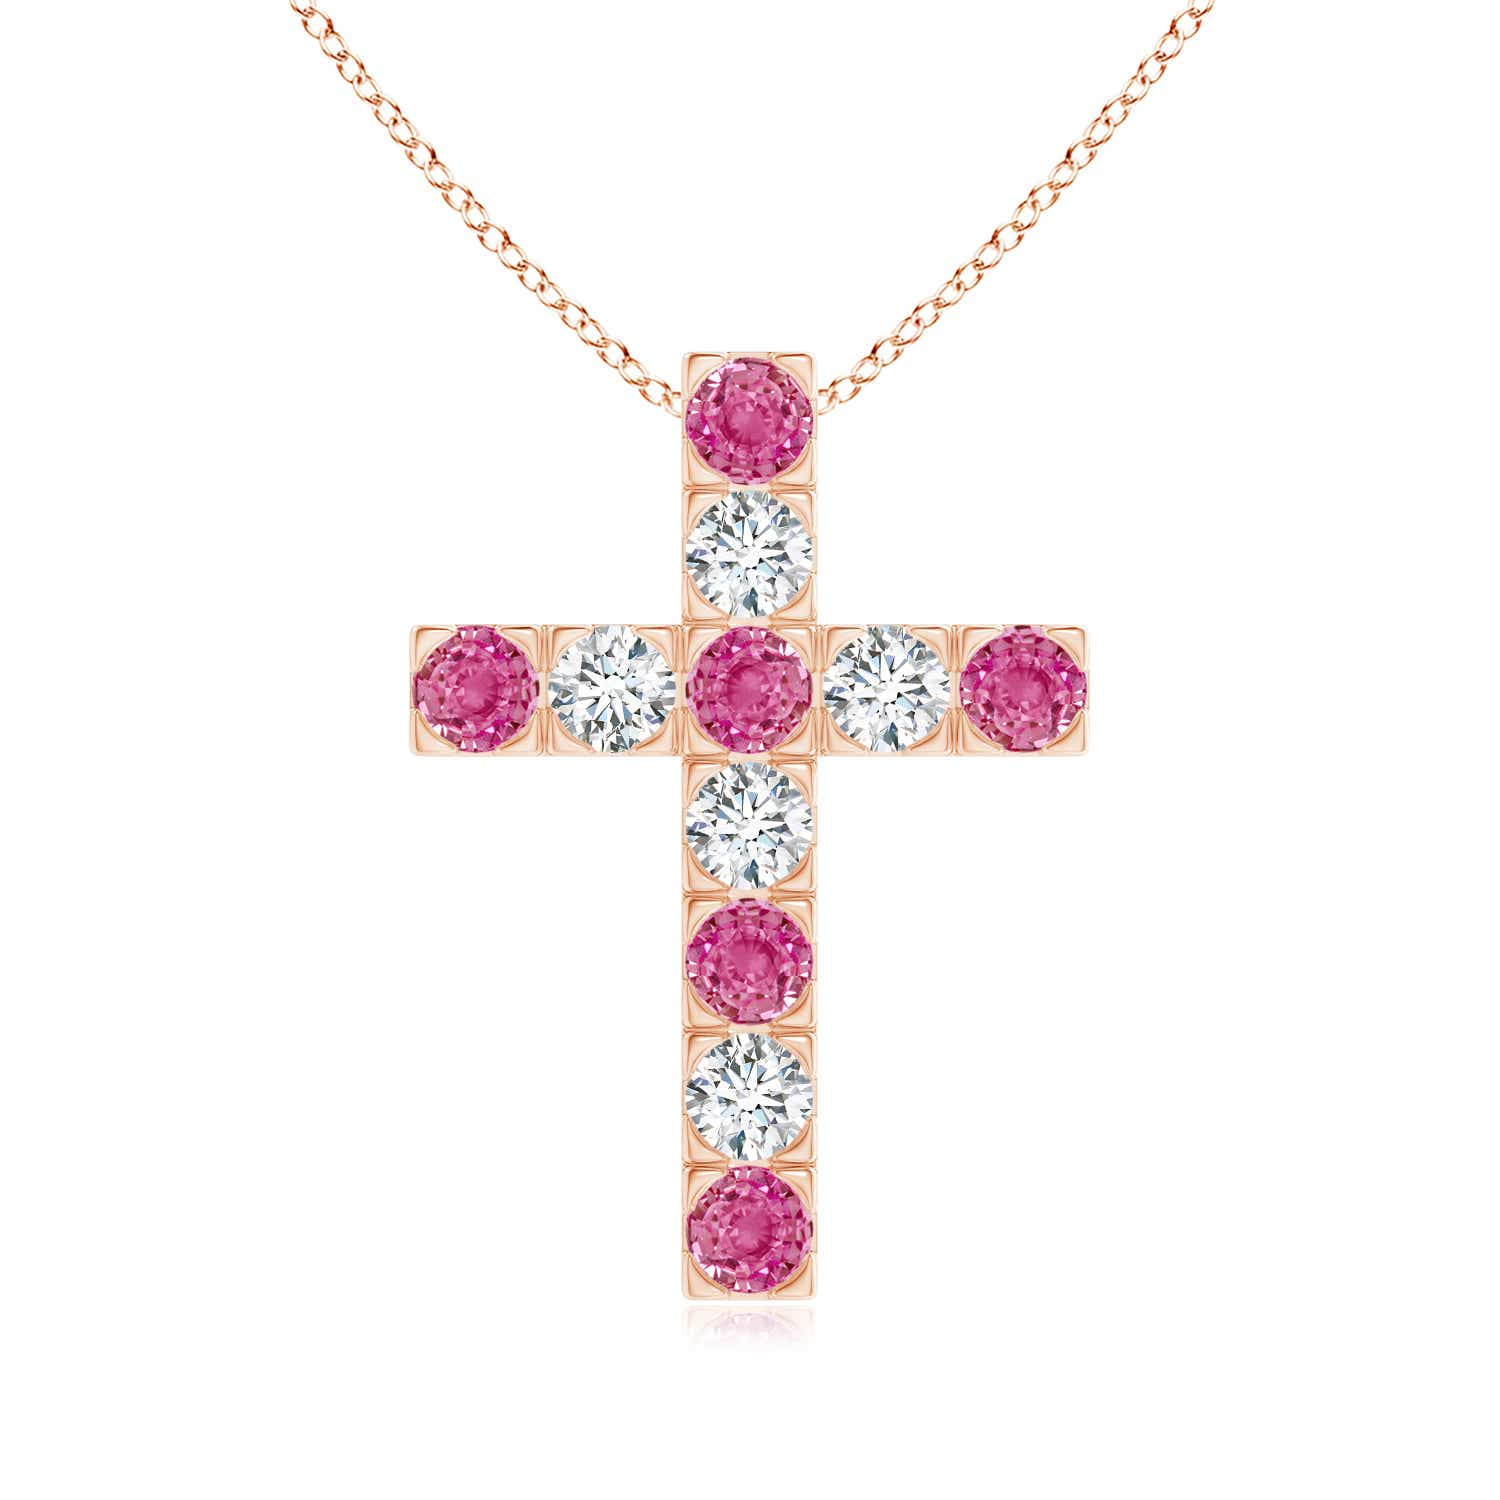 Flat Prong-Set Pink Sapphire and Diamond Cross Pendant - Angara.com